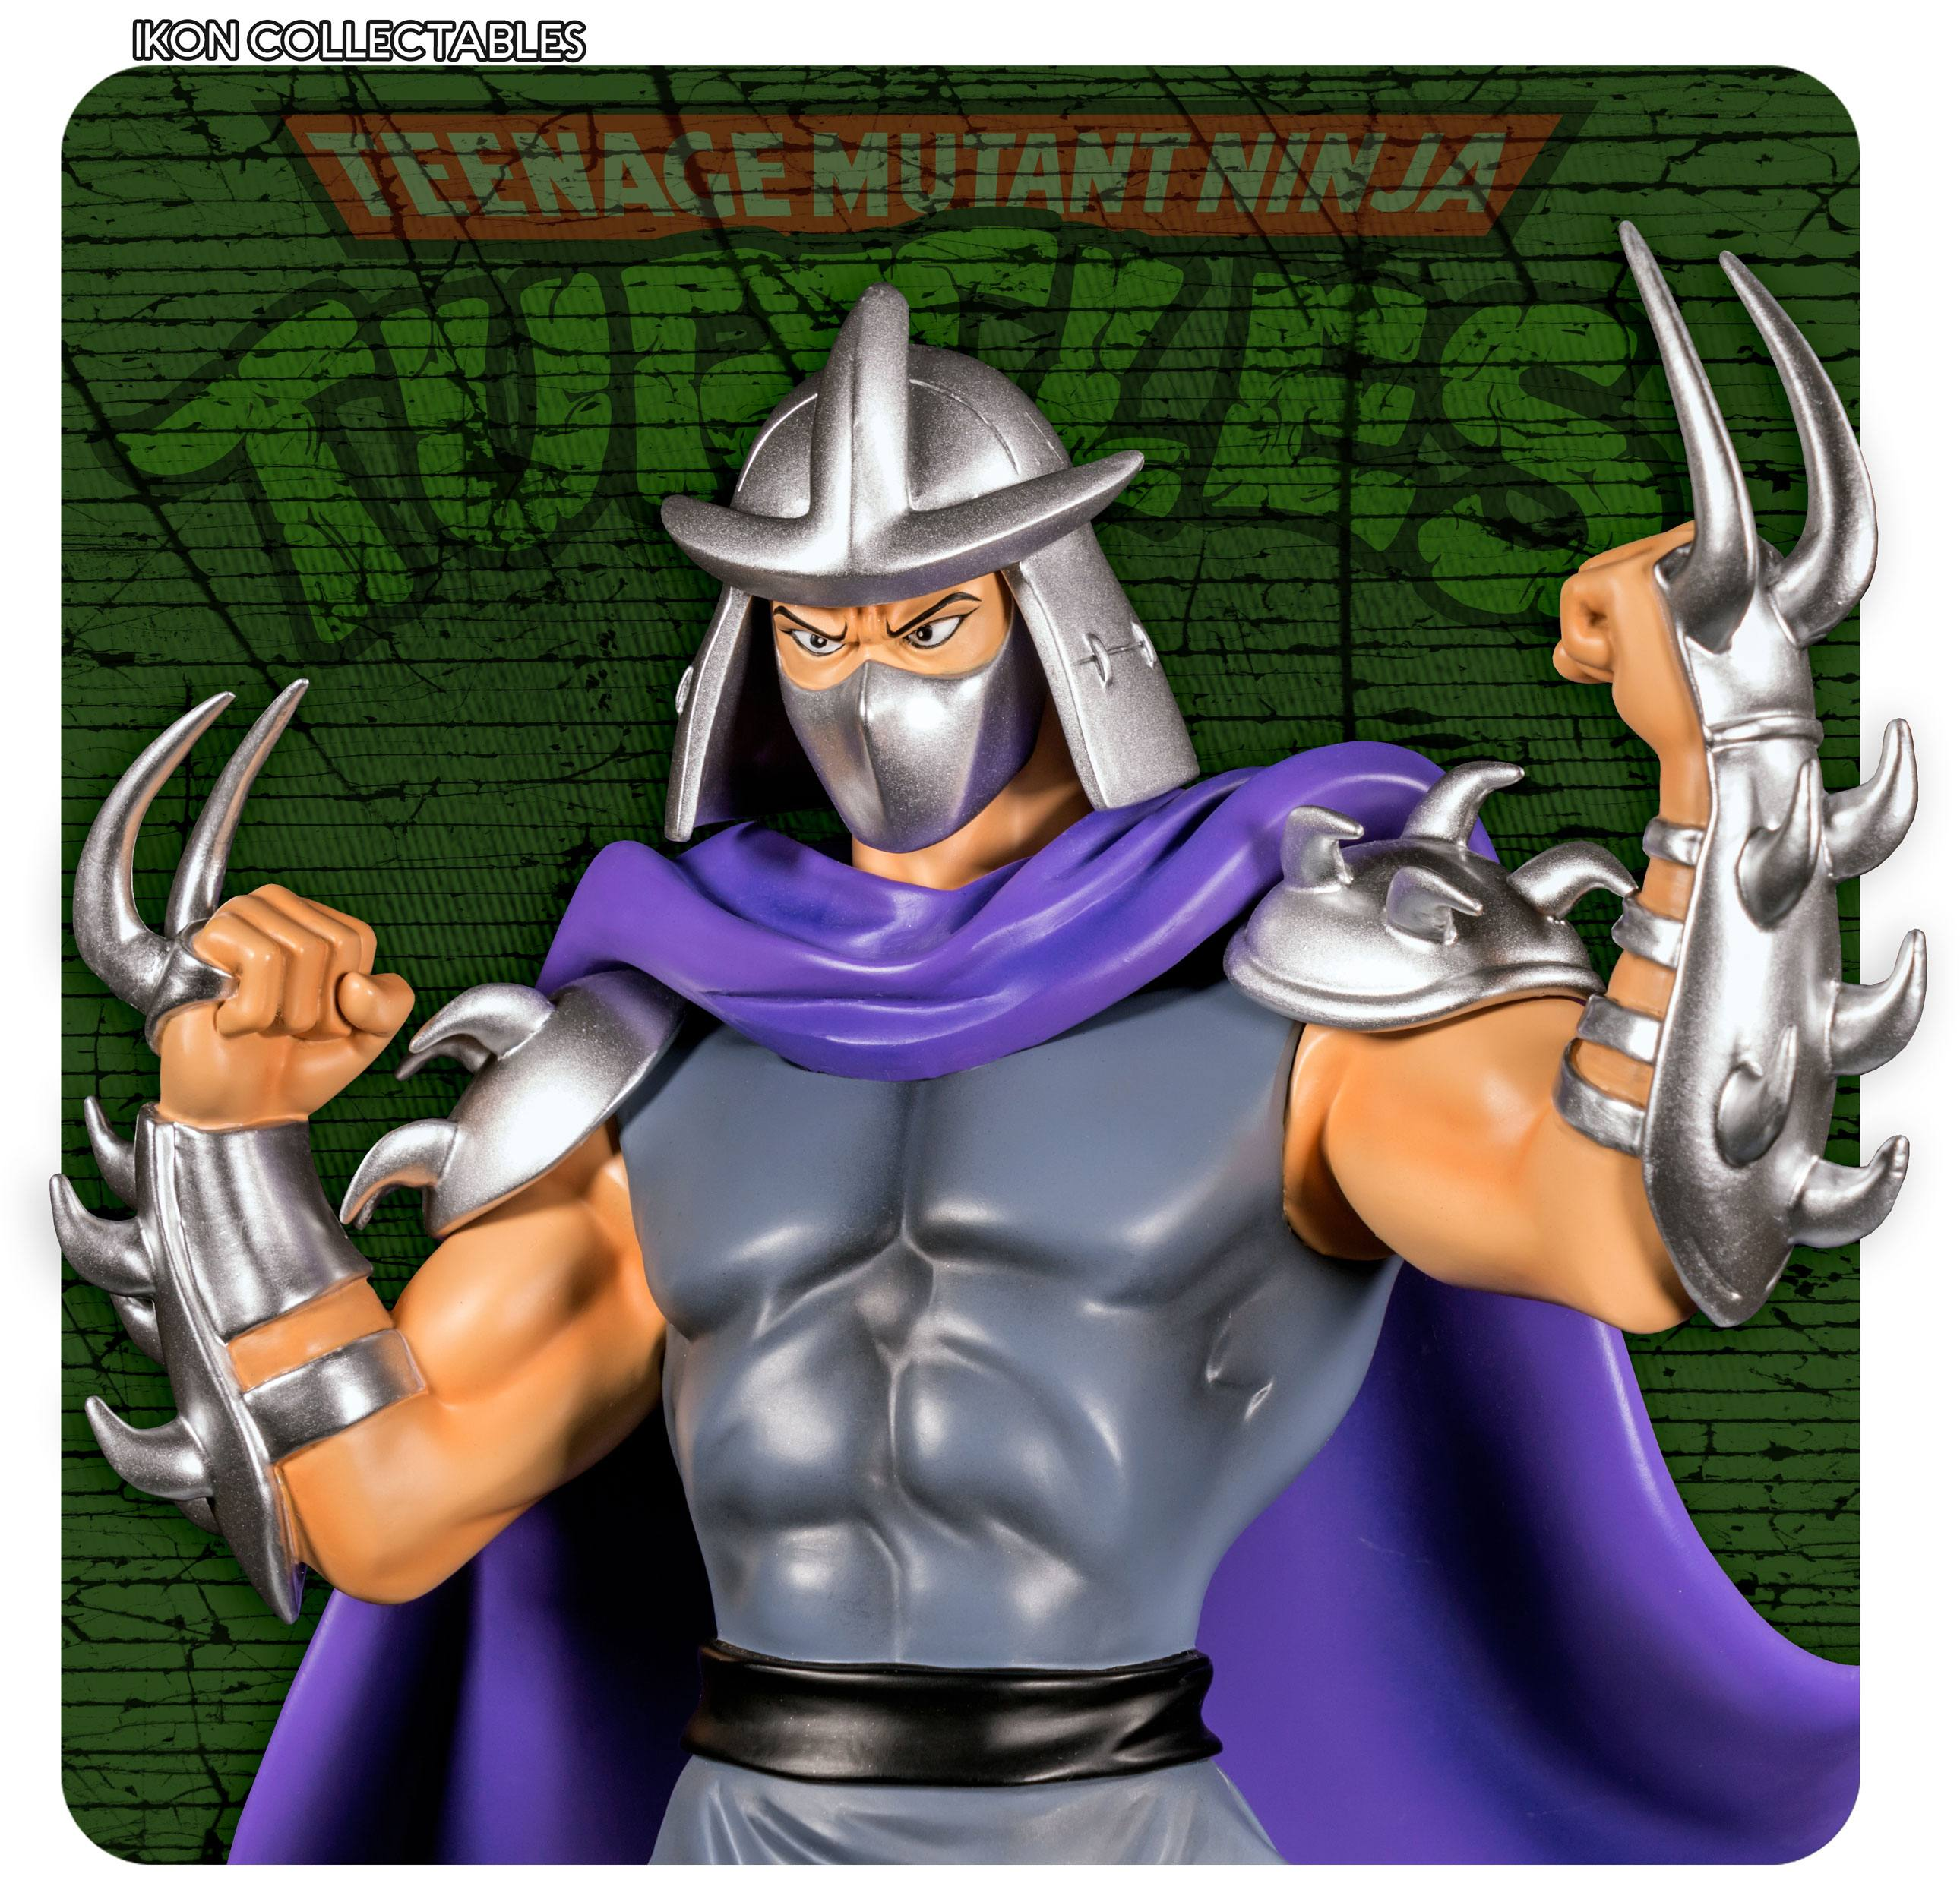 Teenage Mutant Ninja Turtles Statue Shredder 34 cm ...